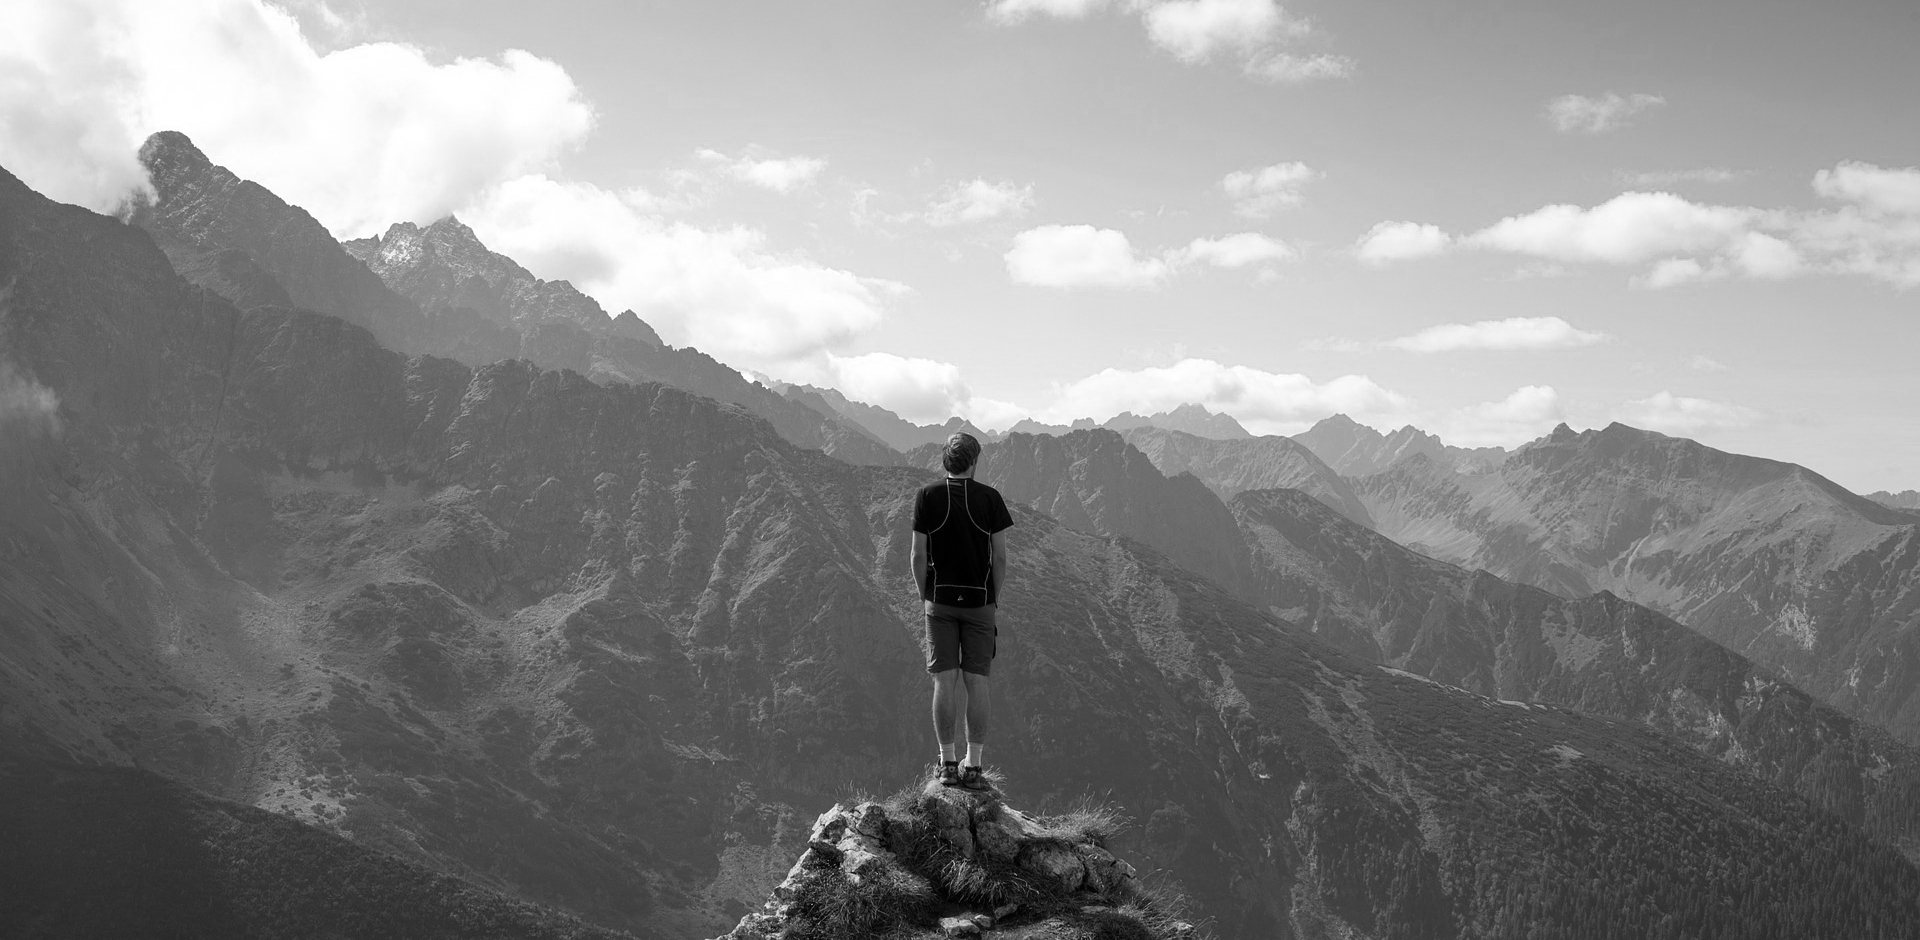 Man stood with mountain view black and white